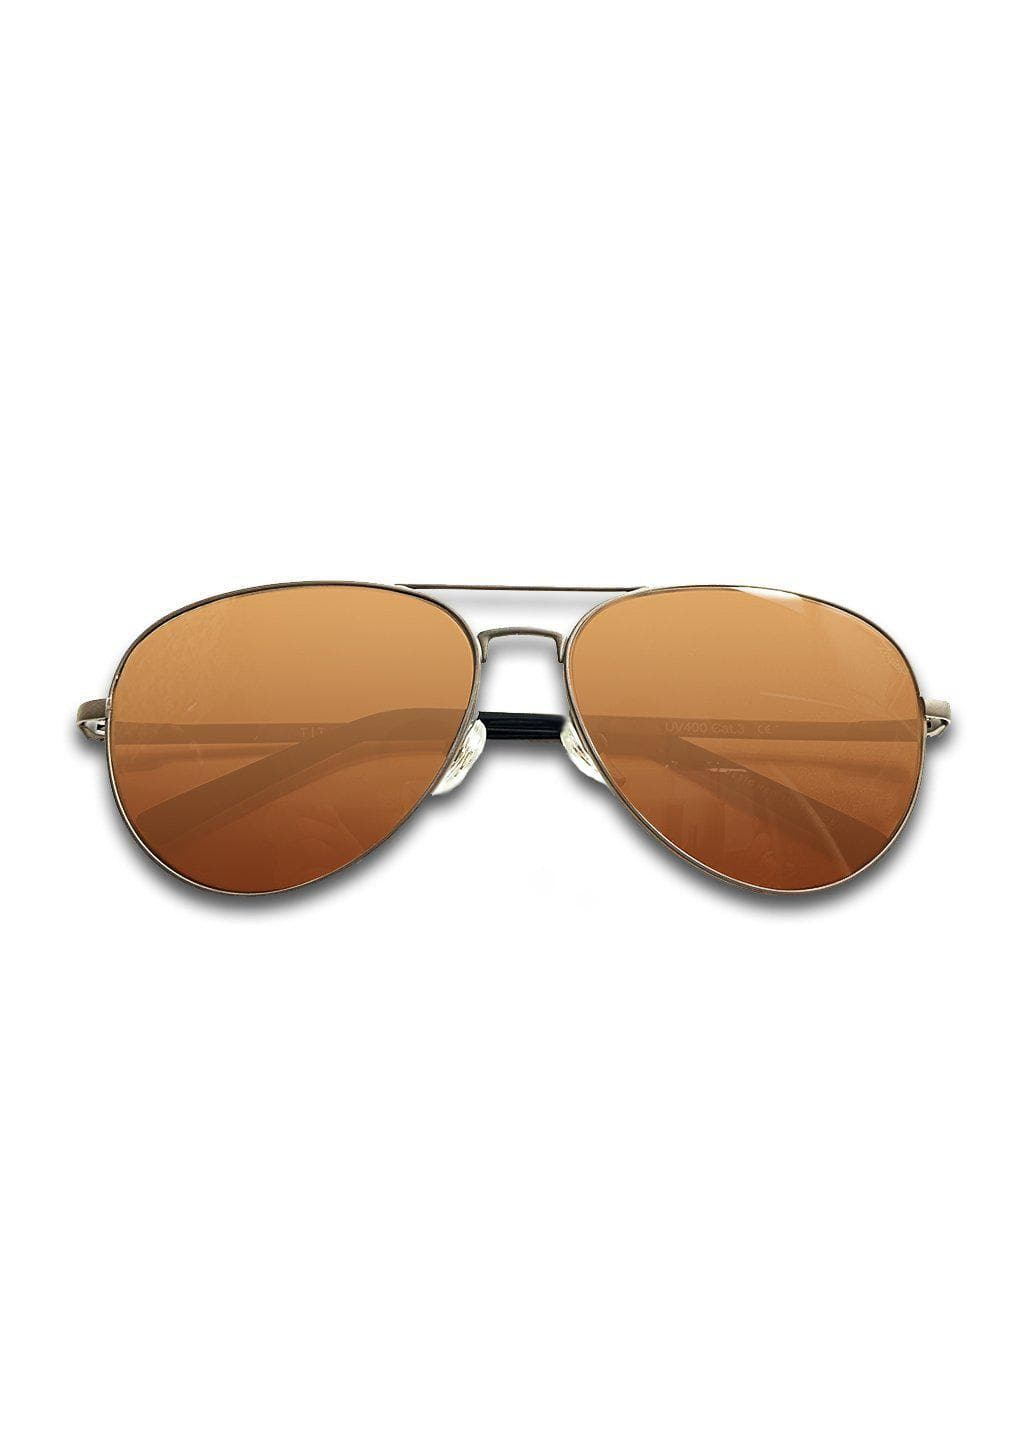 Titanium Aviator Sunglasses - TITAN - Gun Metal - With brown lenses.